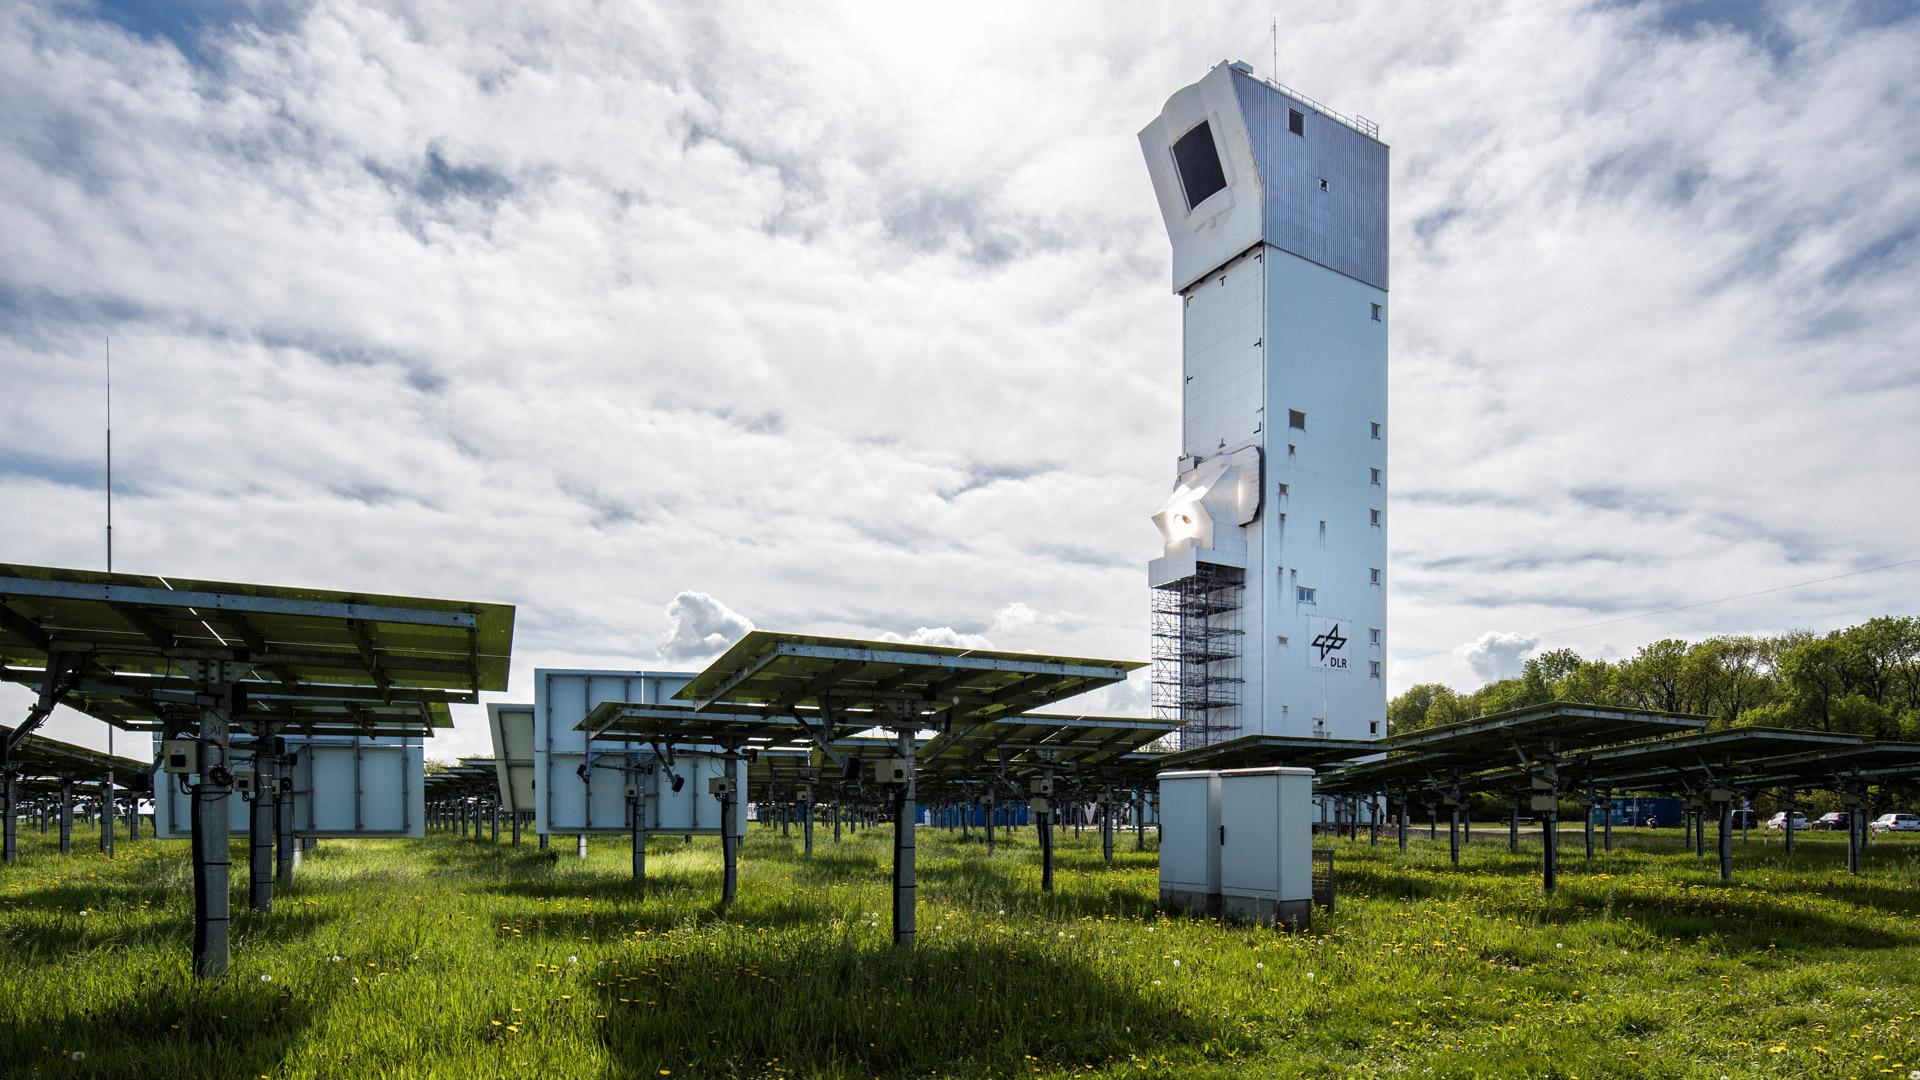 Novel radiation receiver mounted on the research level of the Jülich solar tower